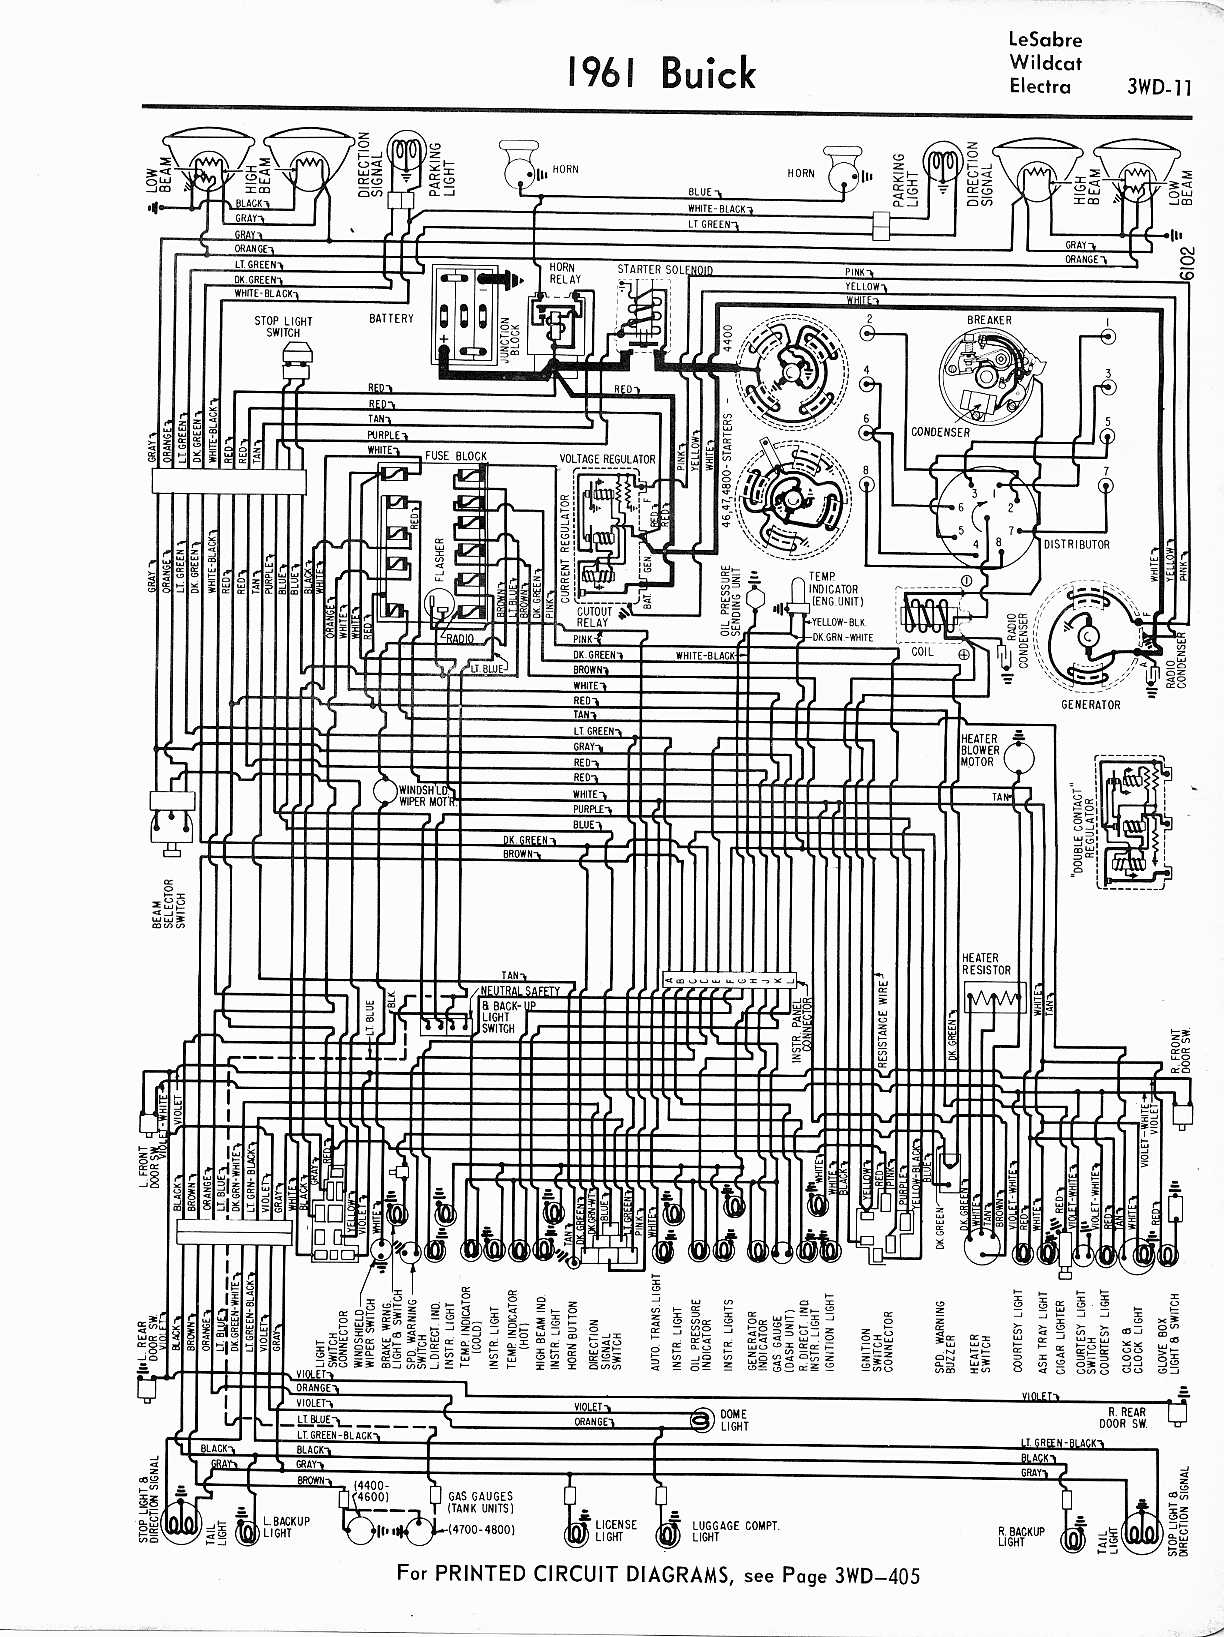 MWireBuic65_3WD 011 buick wiring diagrams 1957 1965 1999 buick century wiring diagram at couponss.co